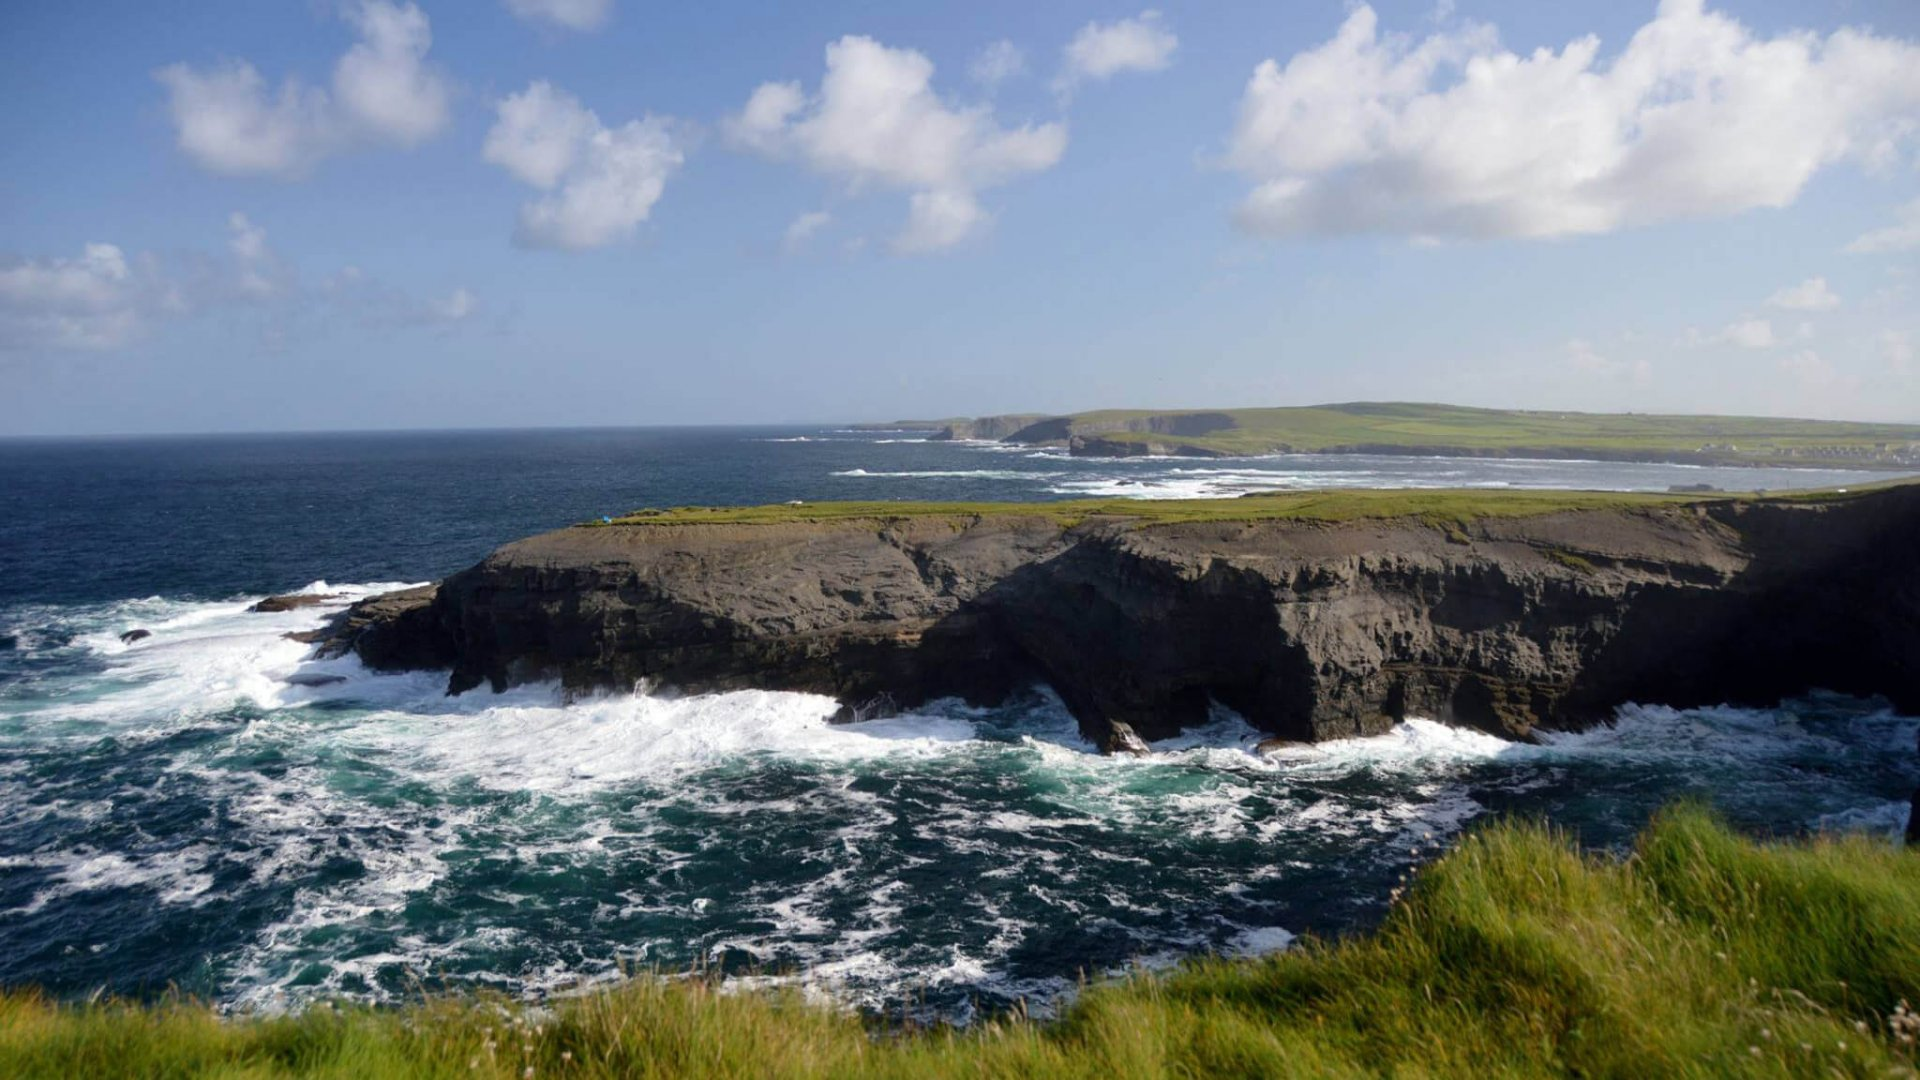 Vagabond guest photo of Kilkee cliffs in Clare